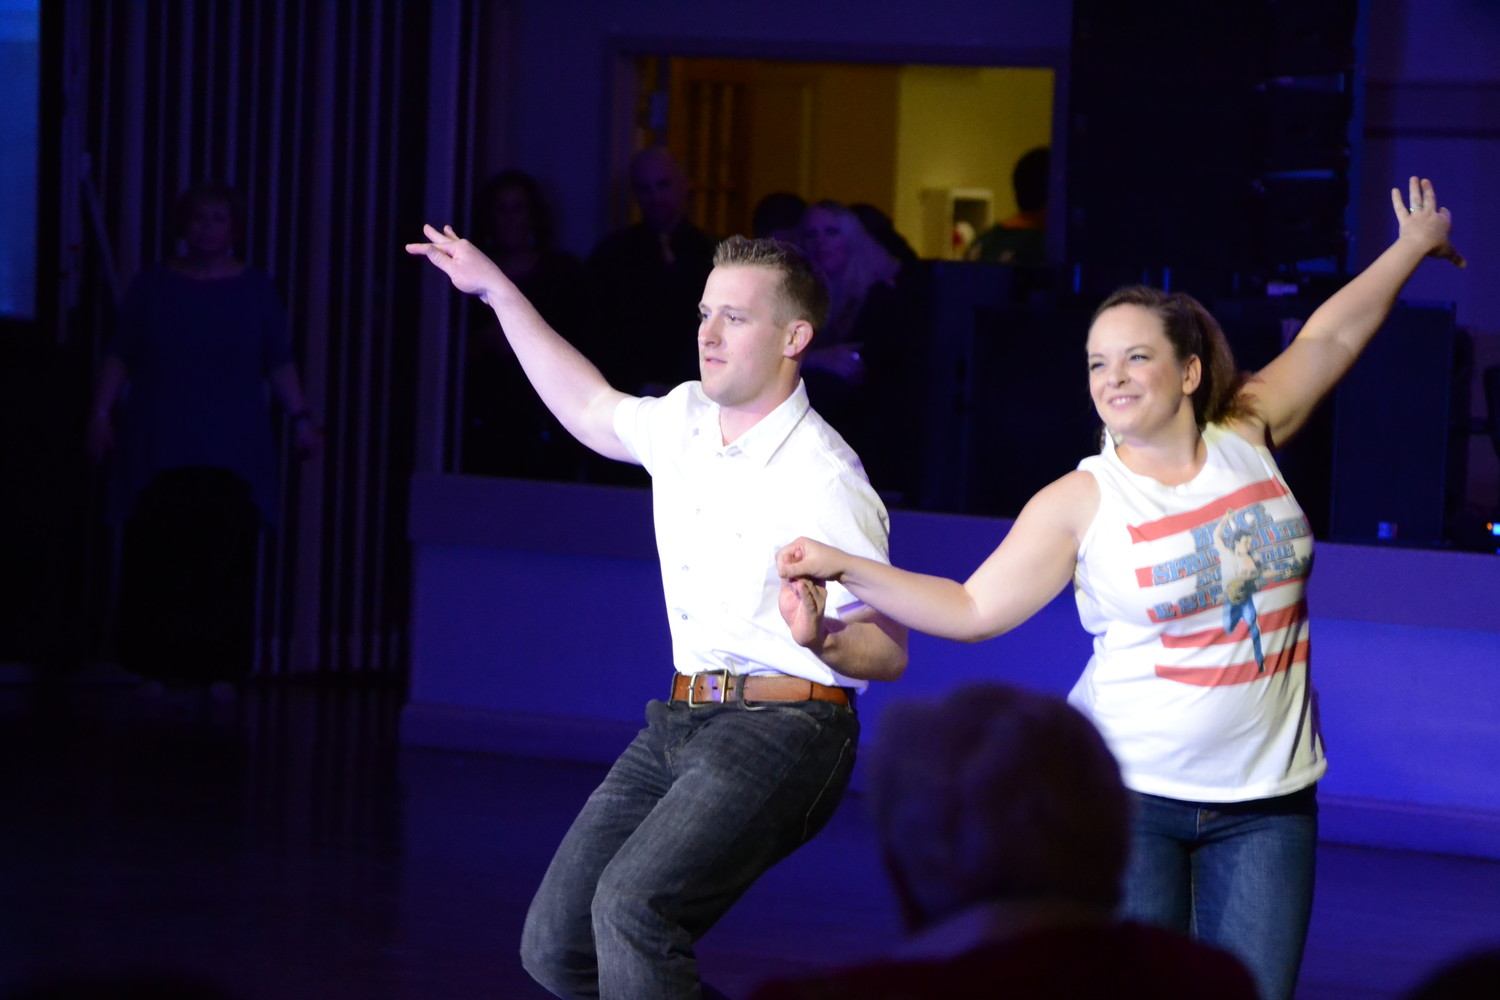 was Joe Bradlee, director of communications and community outreach for the Pawtucket Red Sox, and his partner Briana Crowley were both bosses as they danced through a number paying homage to Bruce Springsteen